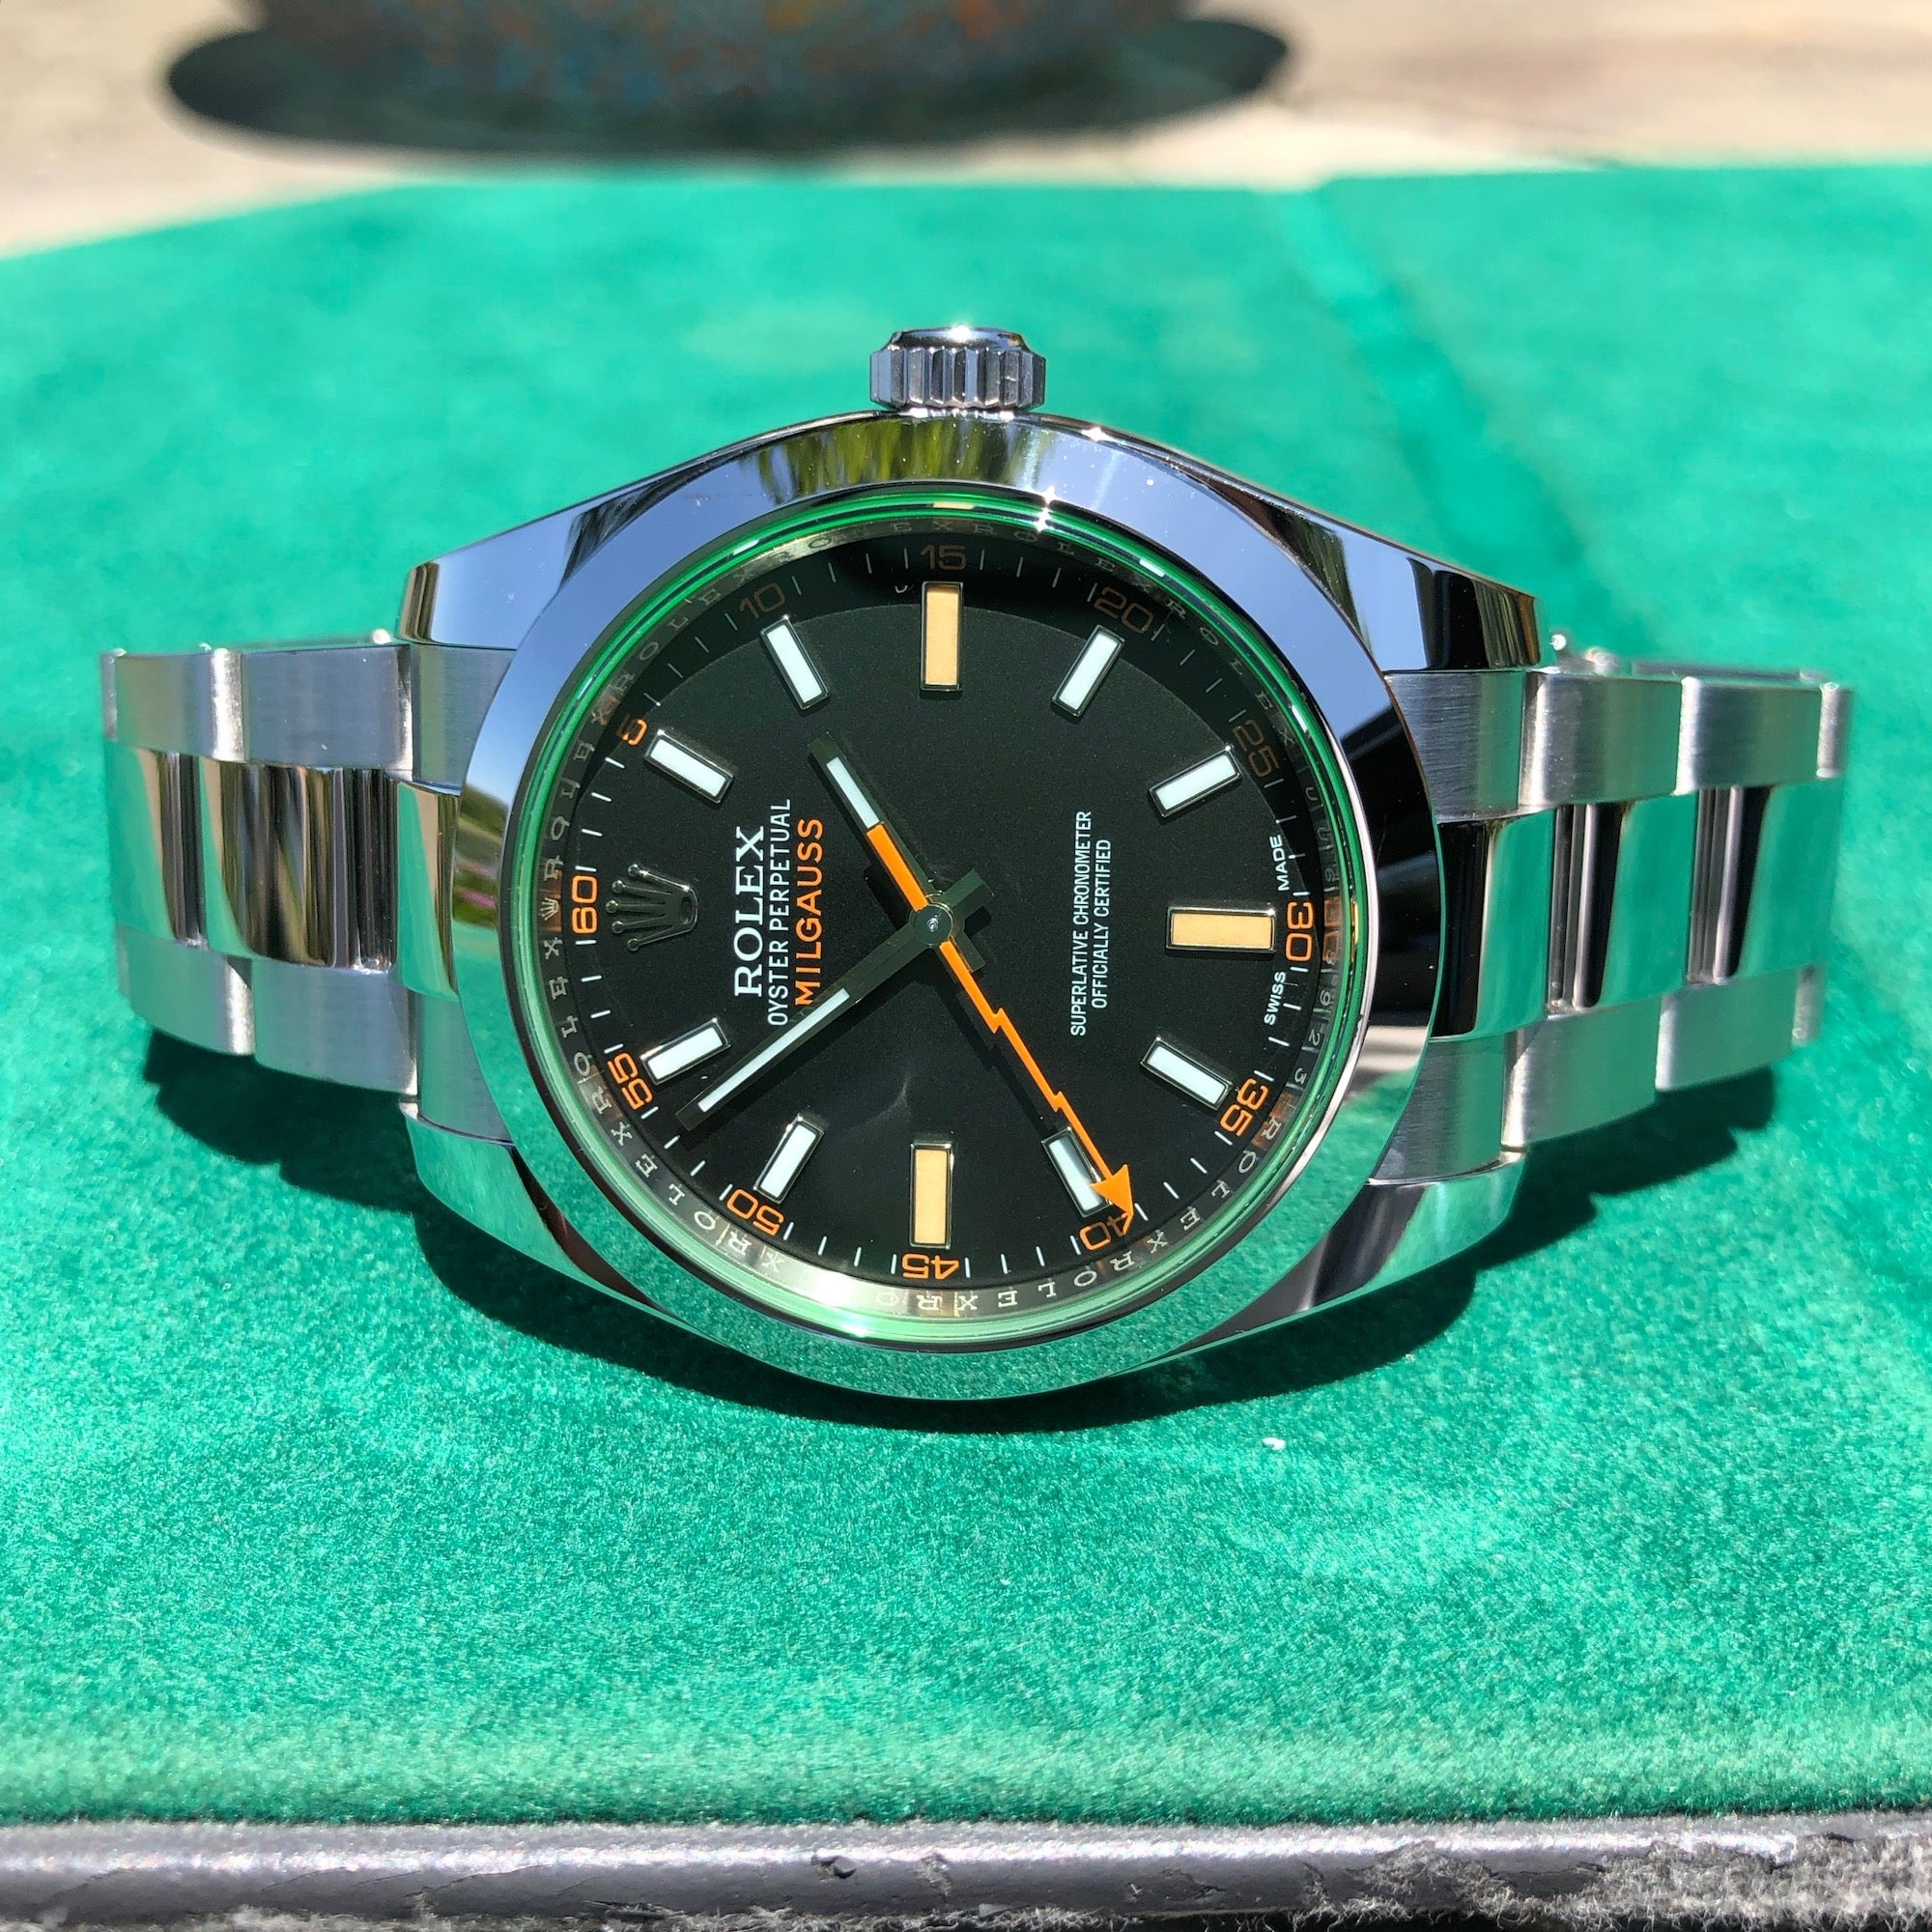 Rolex Milgauss Green 116400GV Stainless Steel Wristwatch Box Papers Circa 2019 - Hashtag Watch Company